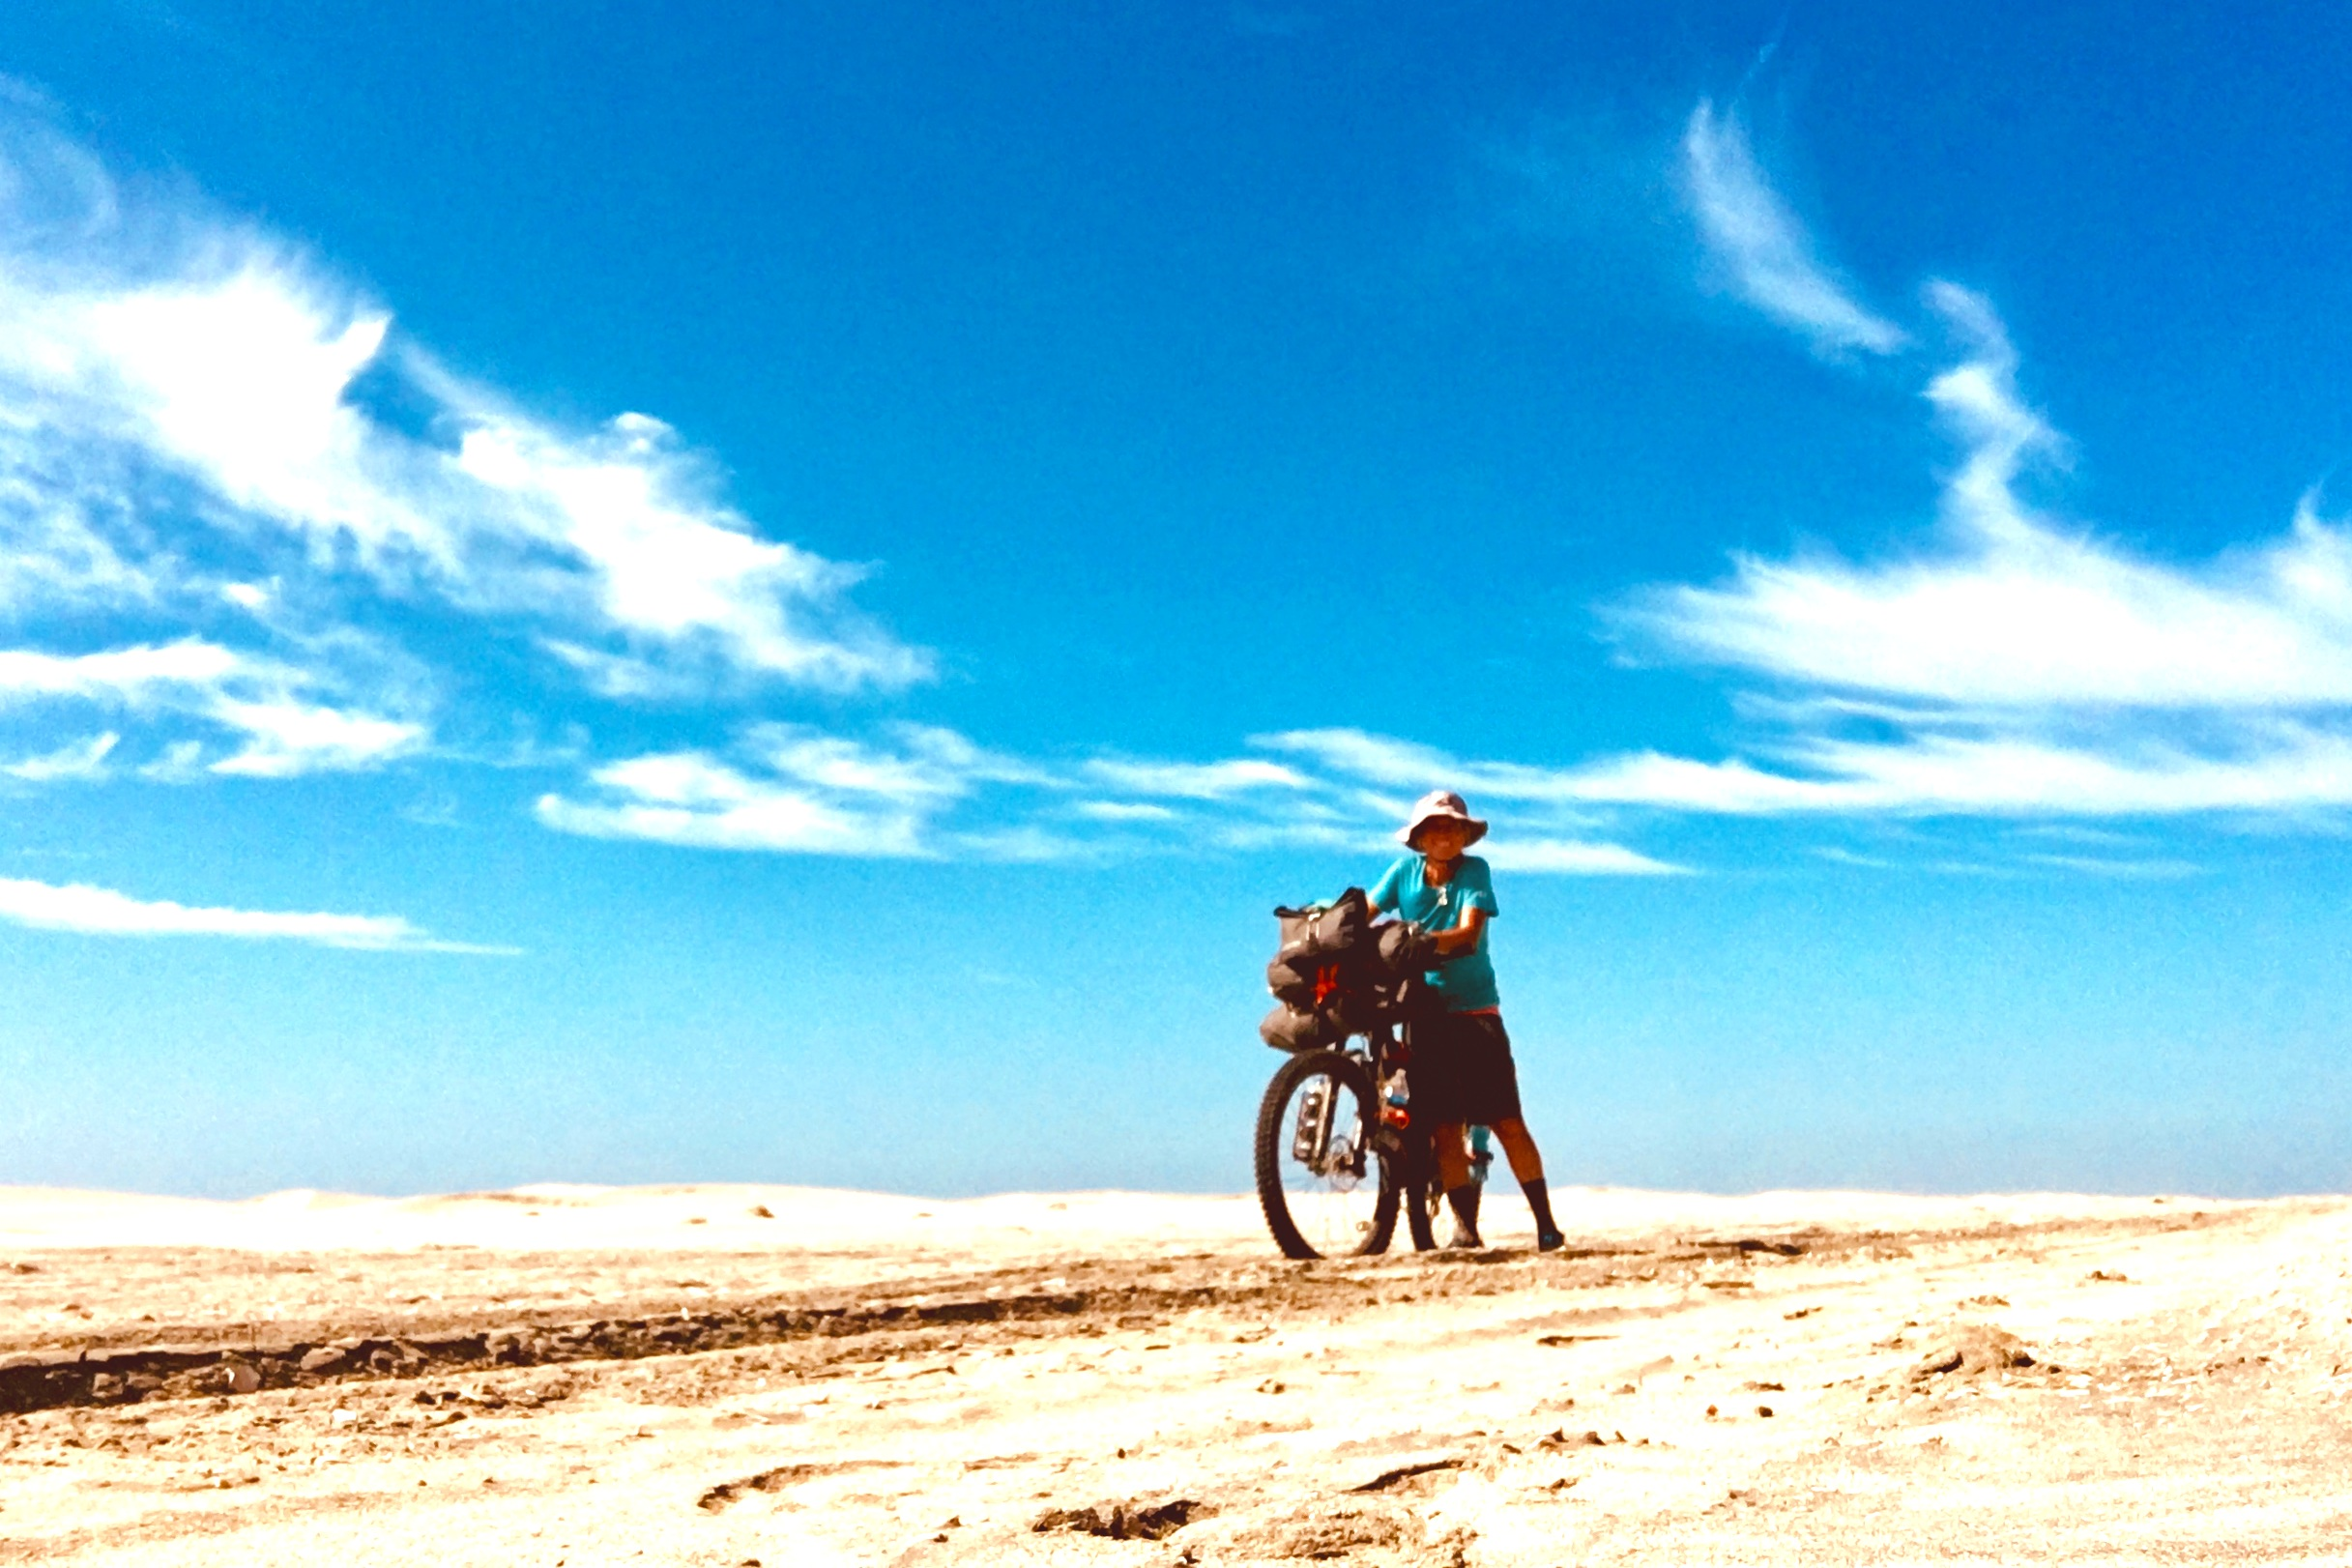 It's a struggle to ride through deep sand